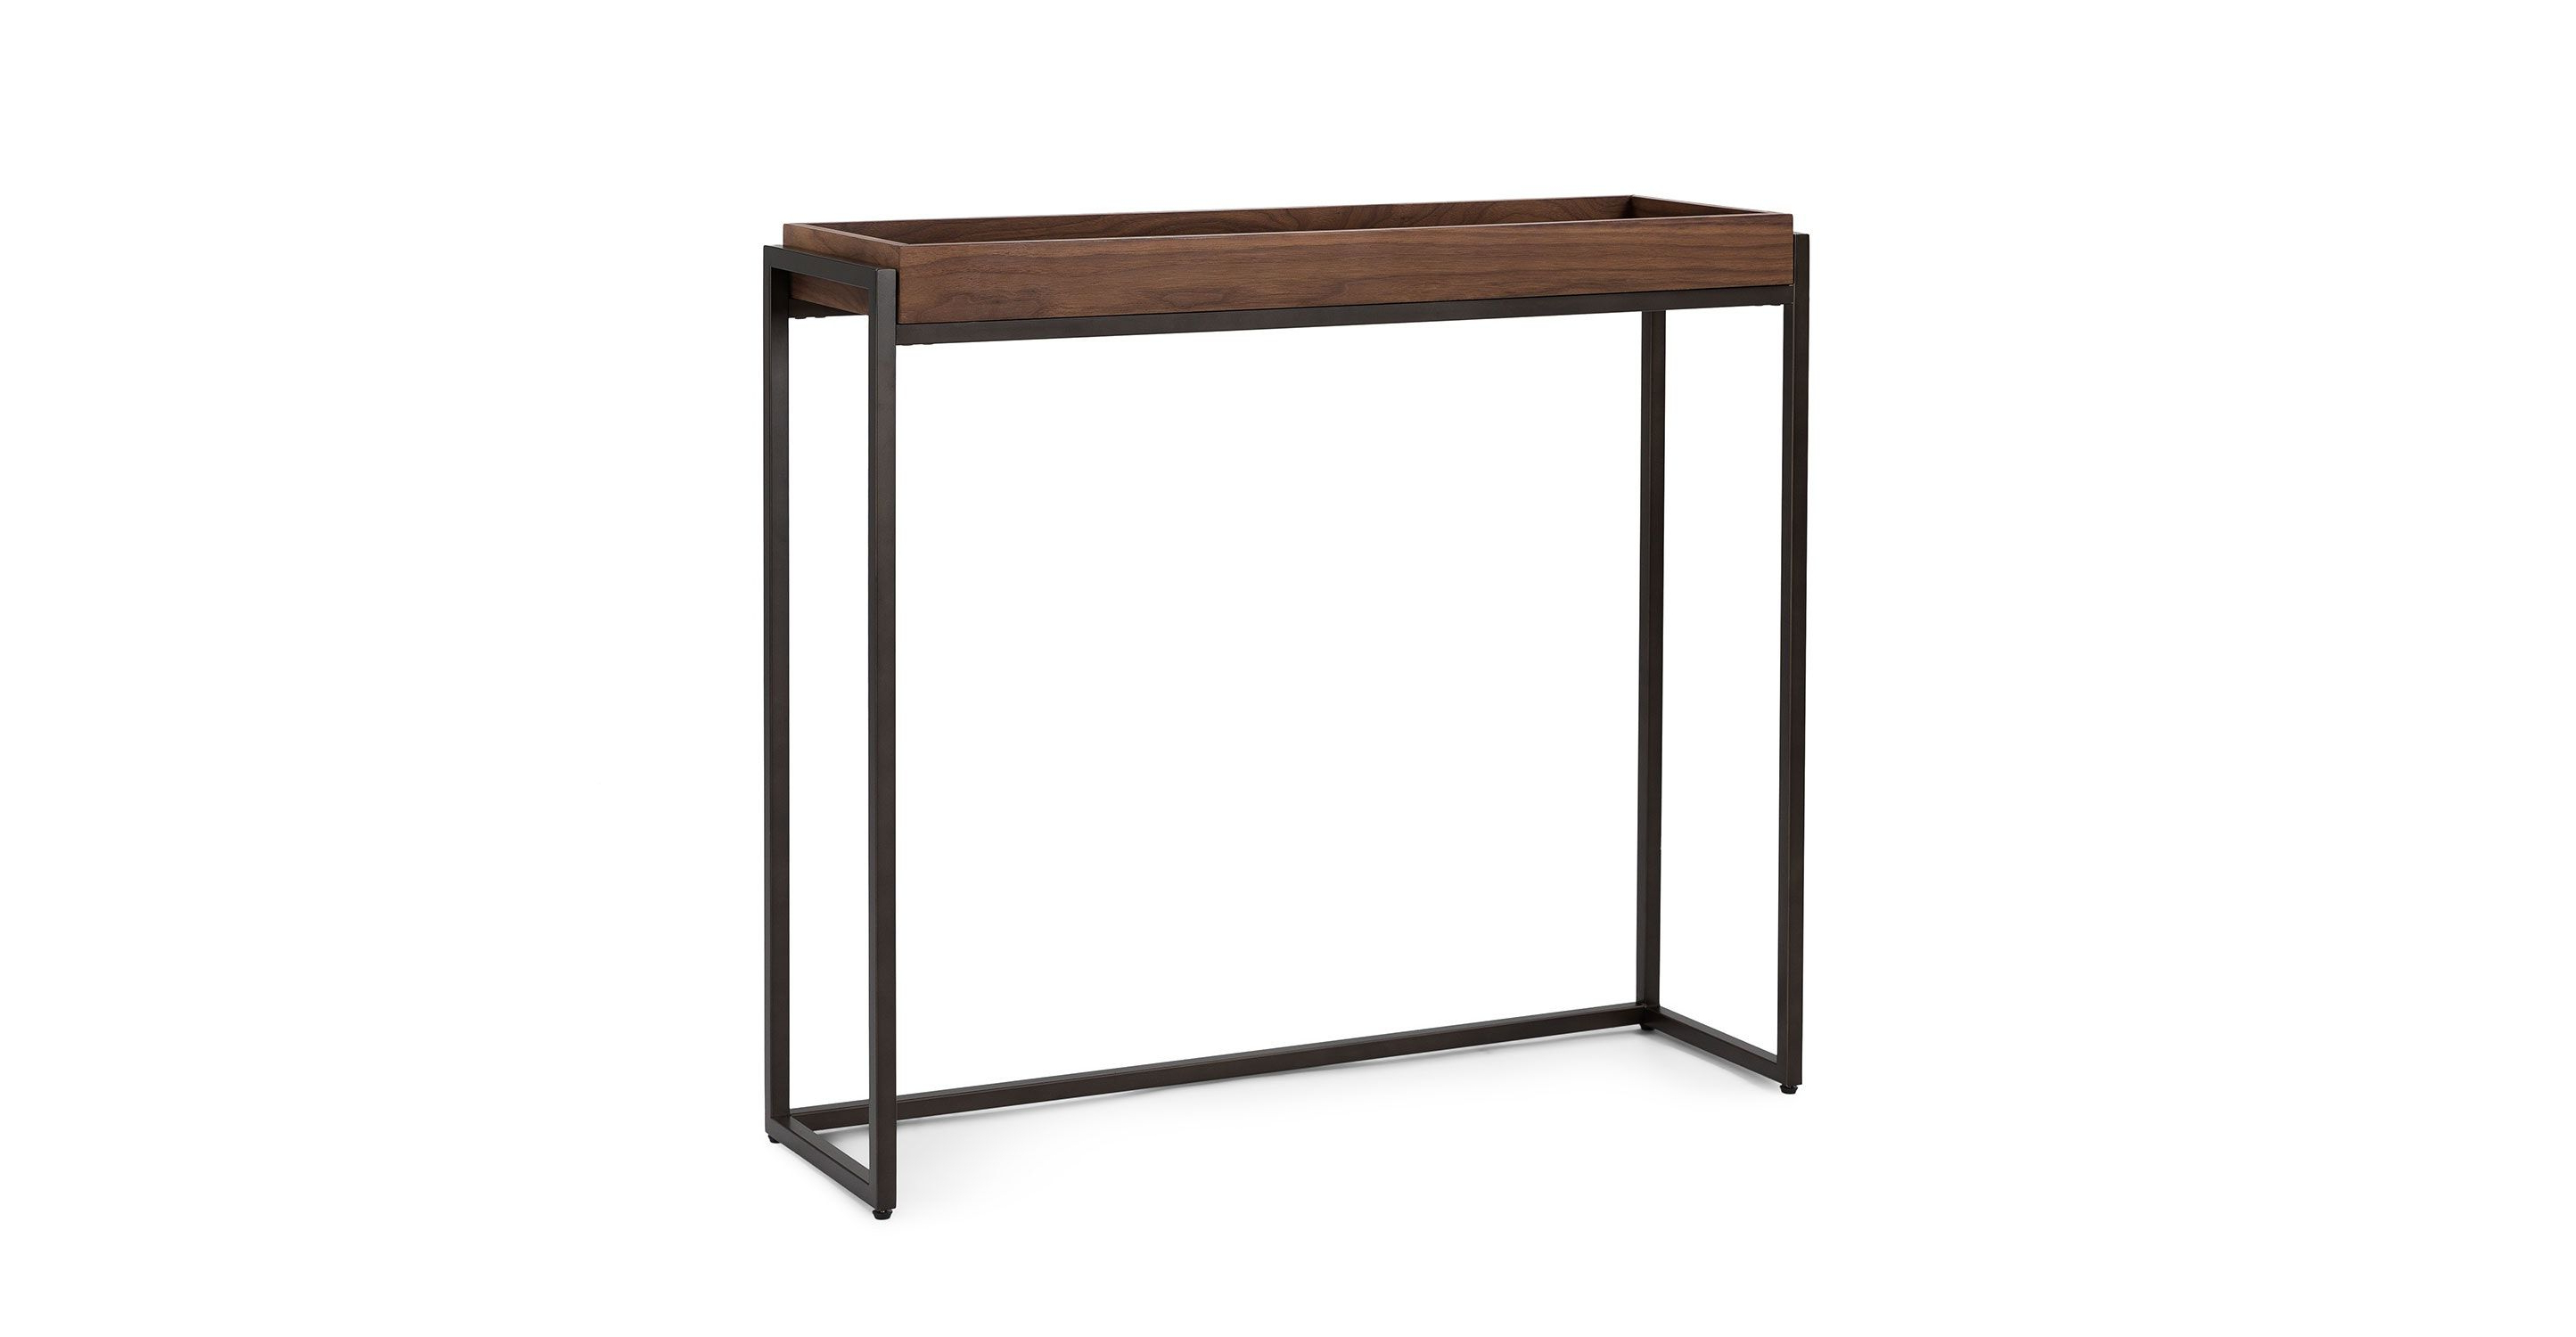 Oscuro Walnut Console Regarding Parsons Clear Glass Top & Brass Base 48X16 Console Tables (View 10 of 20)